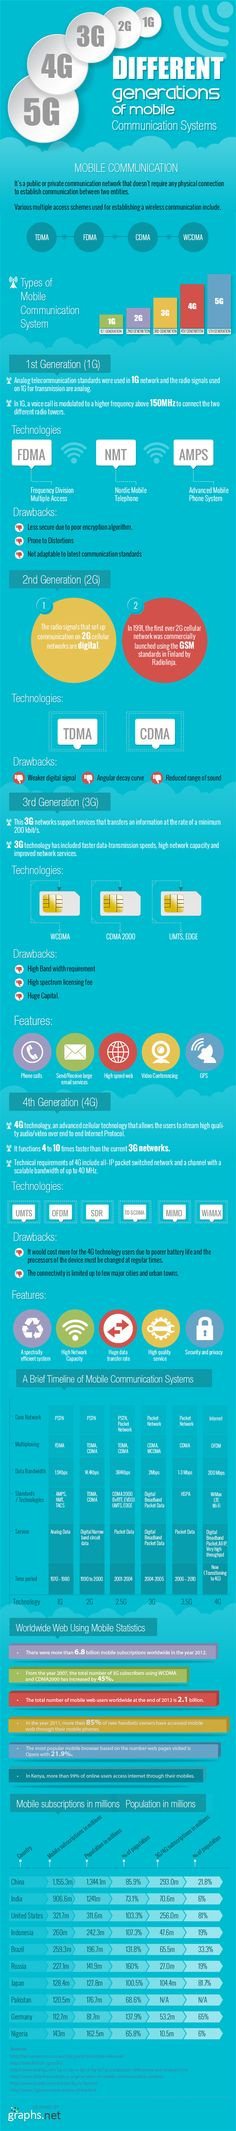 Different generations of mobile communication system #infographic